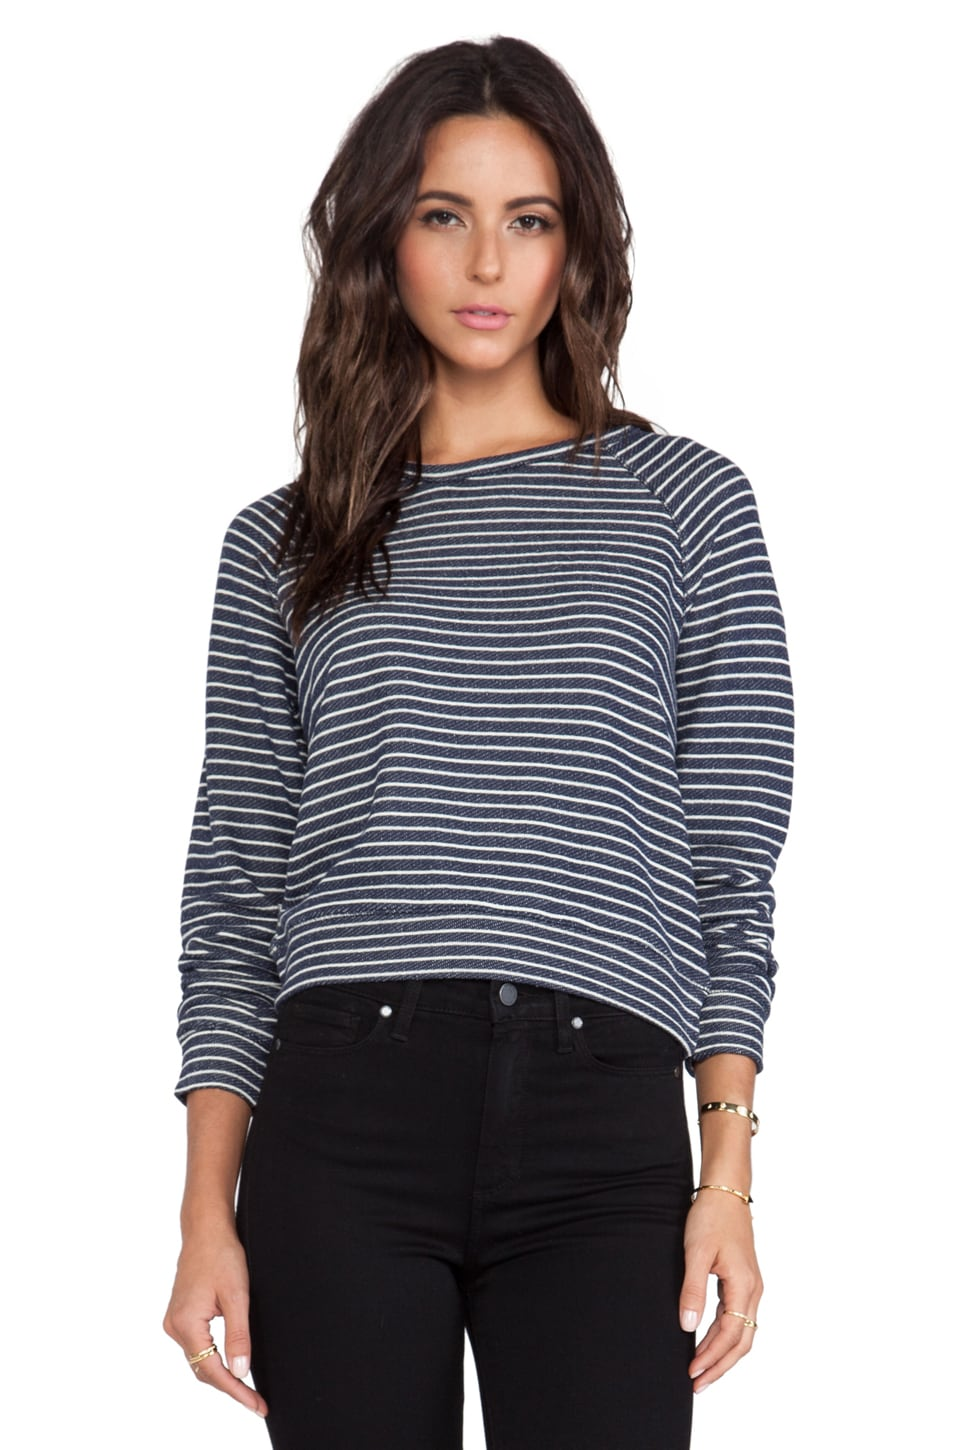 TEXTILE Elizabeth and James Striped Perfect Sweatshirt in Navy & White